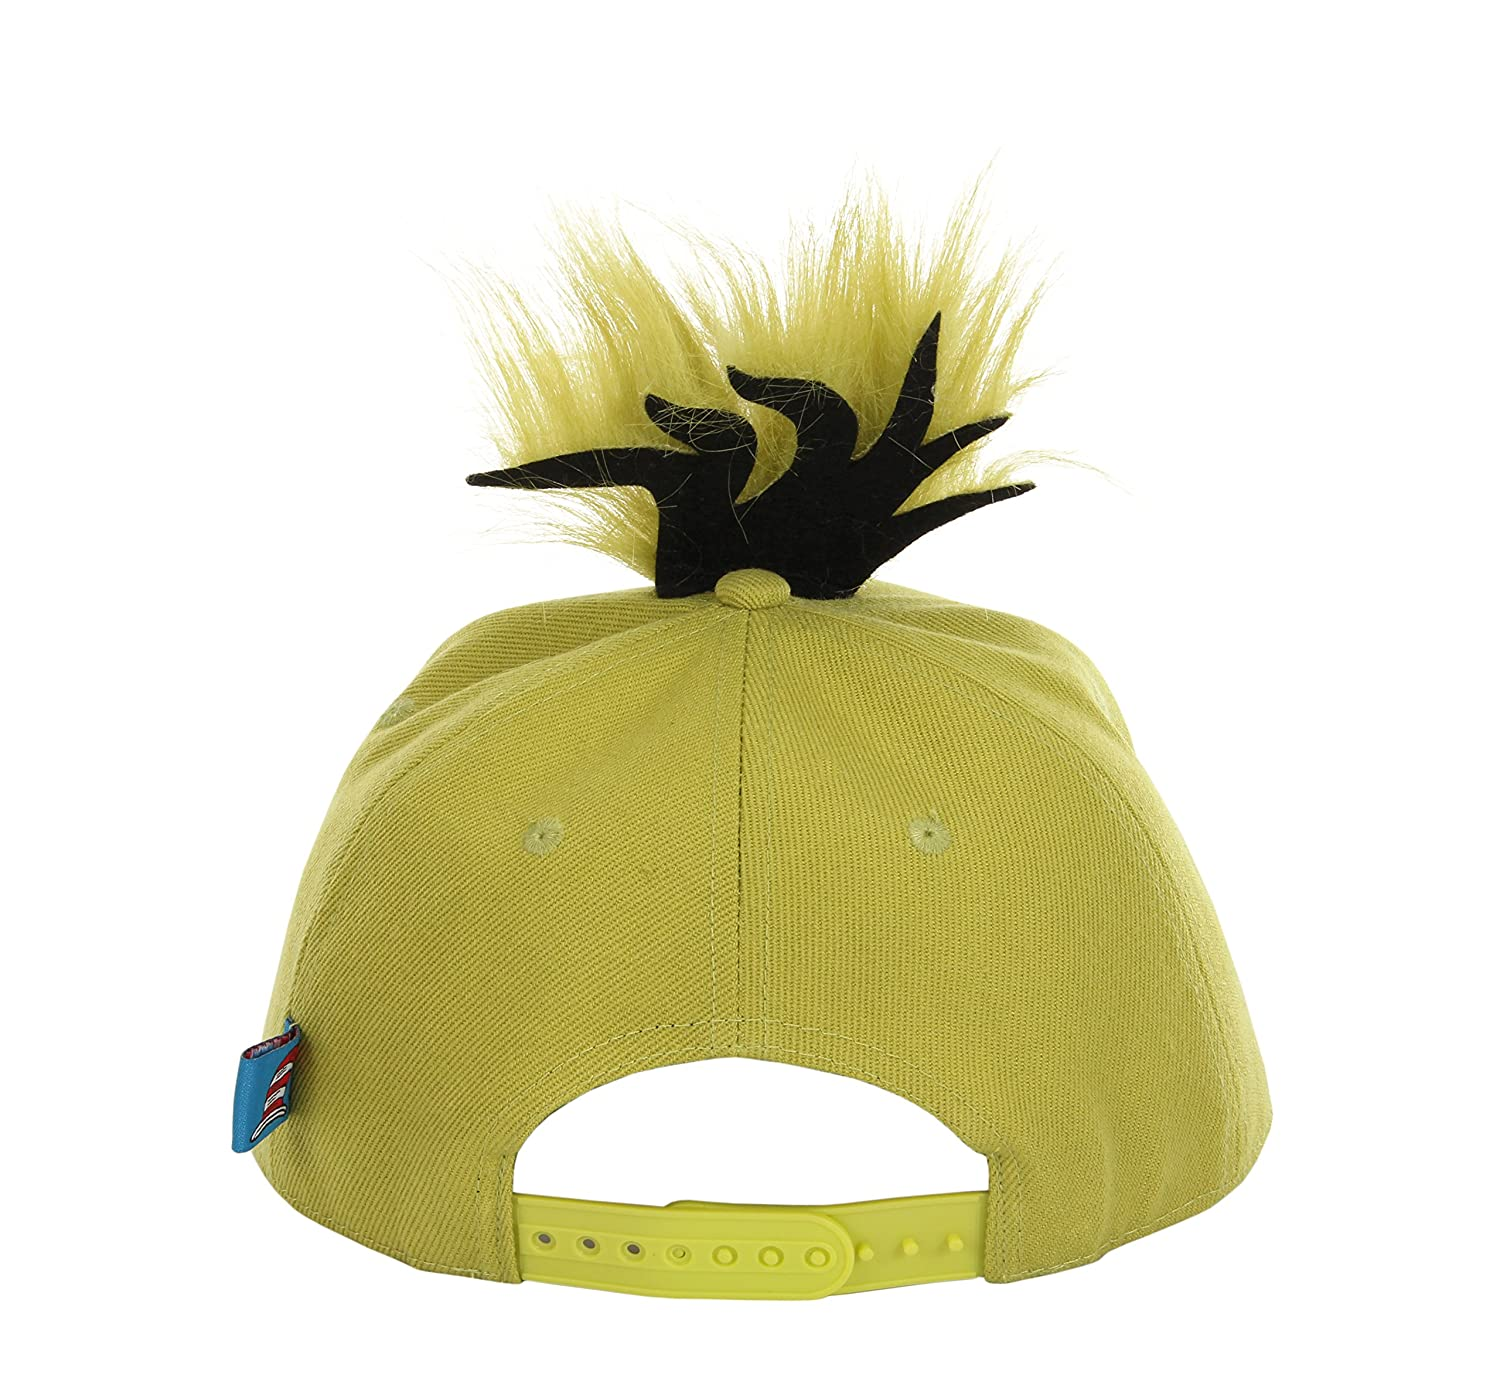 53f969945c40a Amazon.com  BRICKY BLOCKS Dr. Seuss Grinch Hat for Kids and Adults by  Elope  Clothing